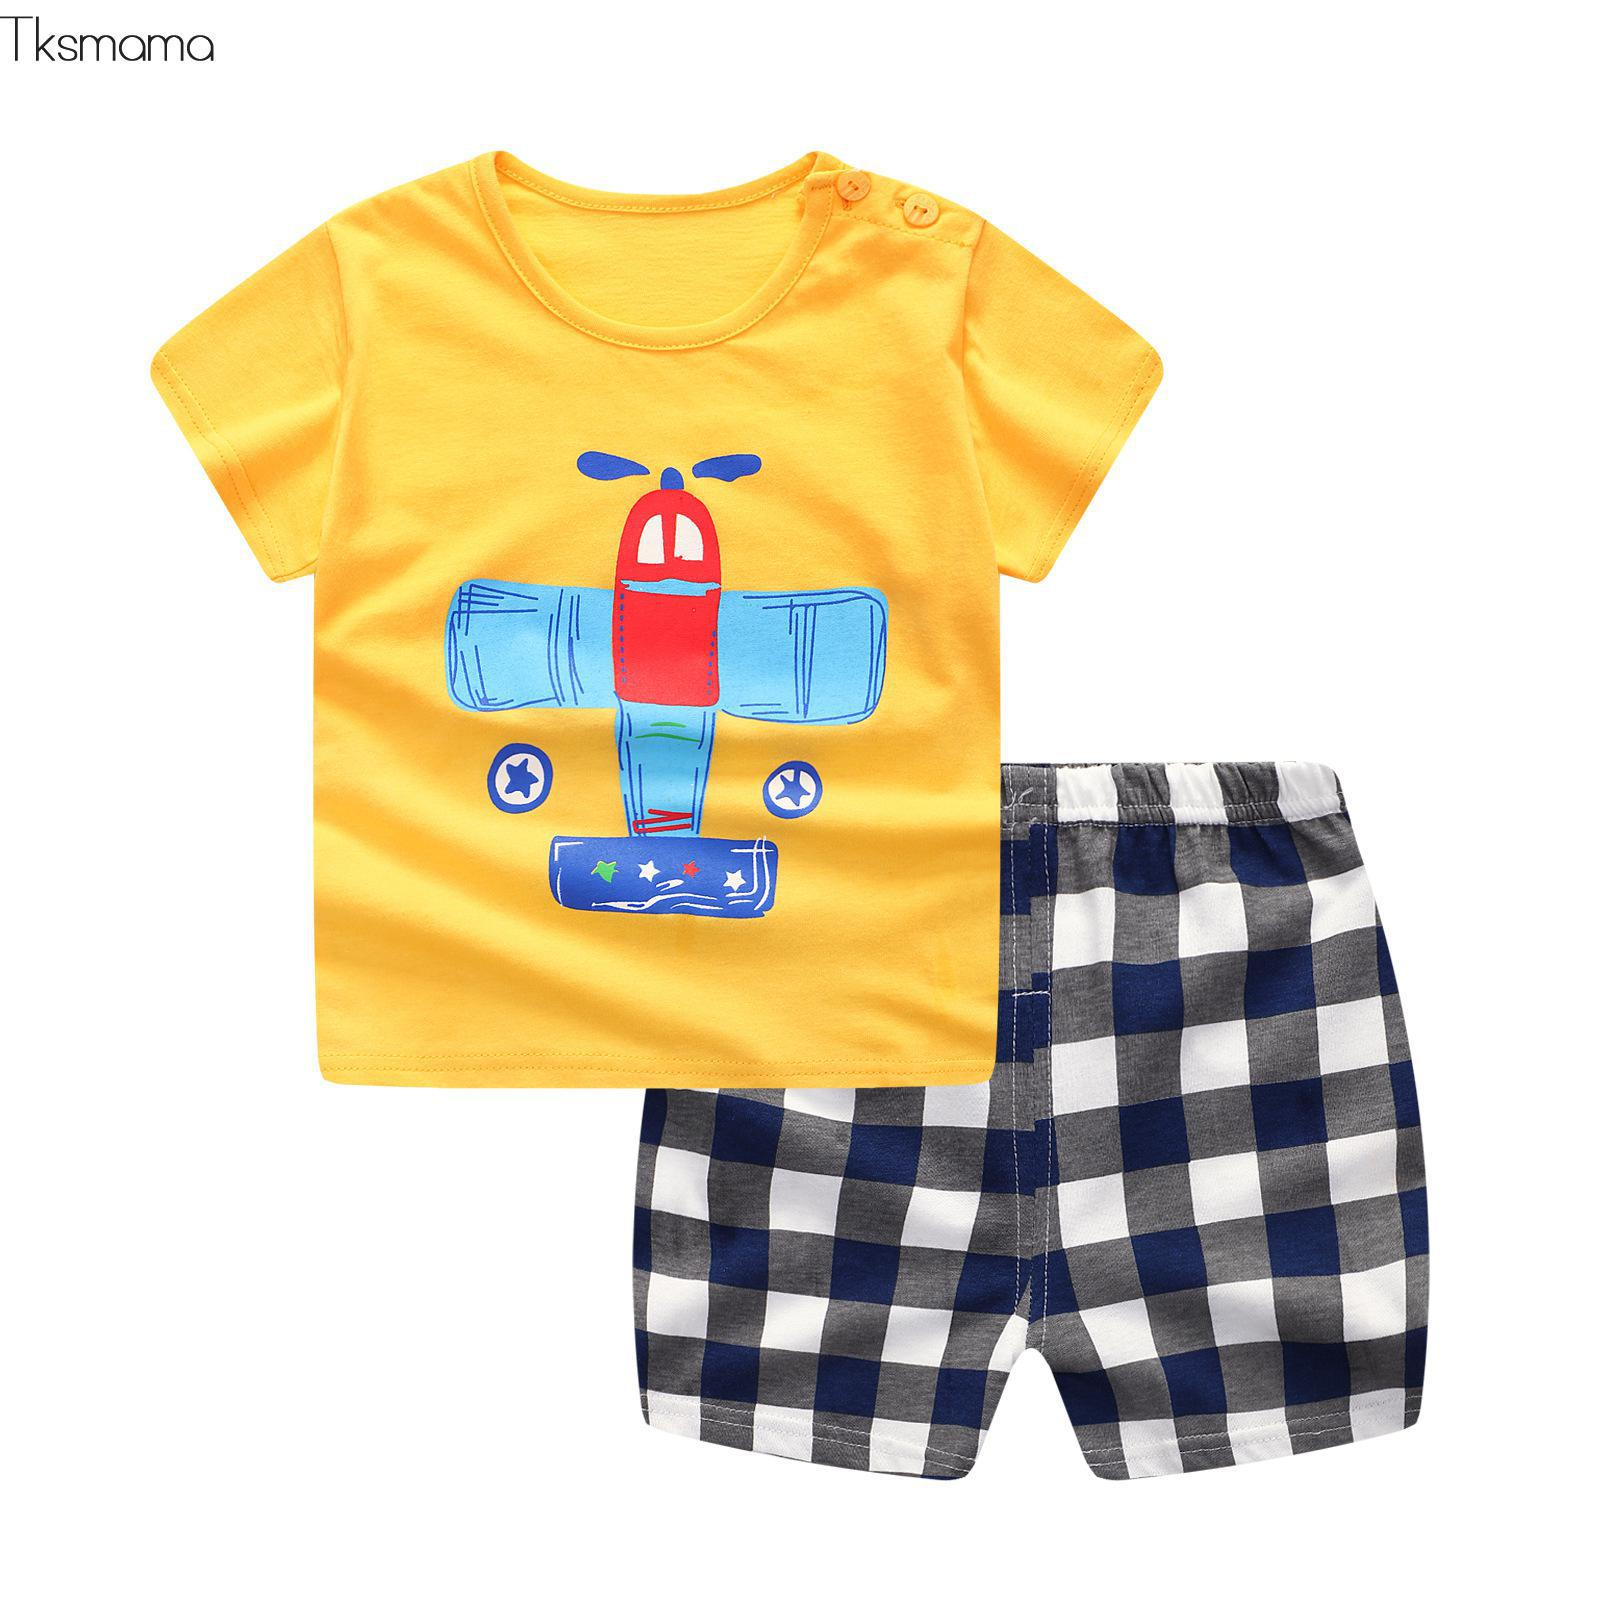 Tksmama Cotton Sports T-shirt Shorts Sets Toddler Clothing